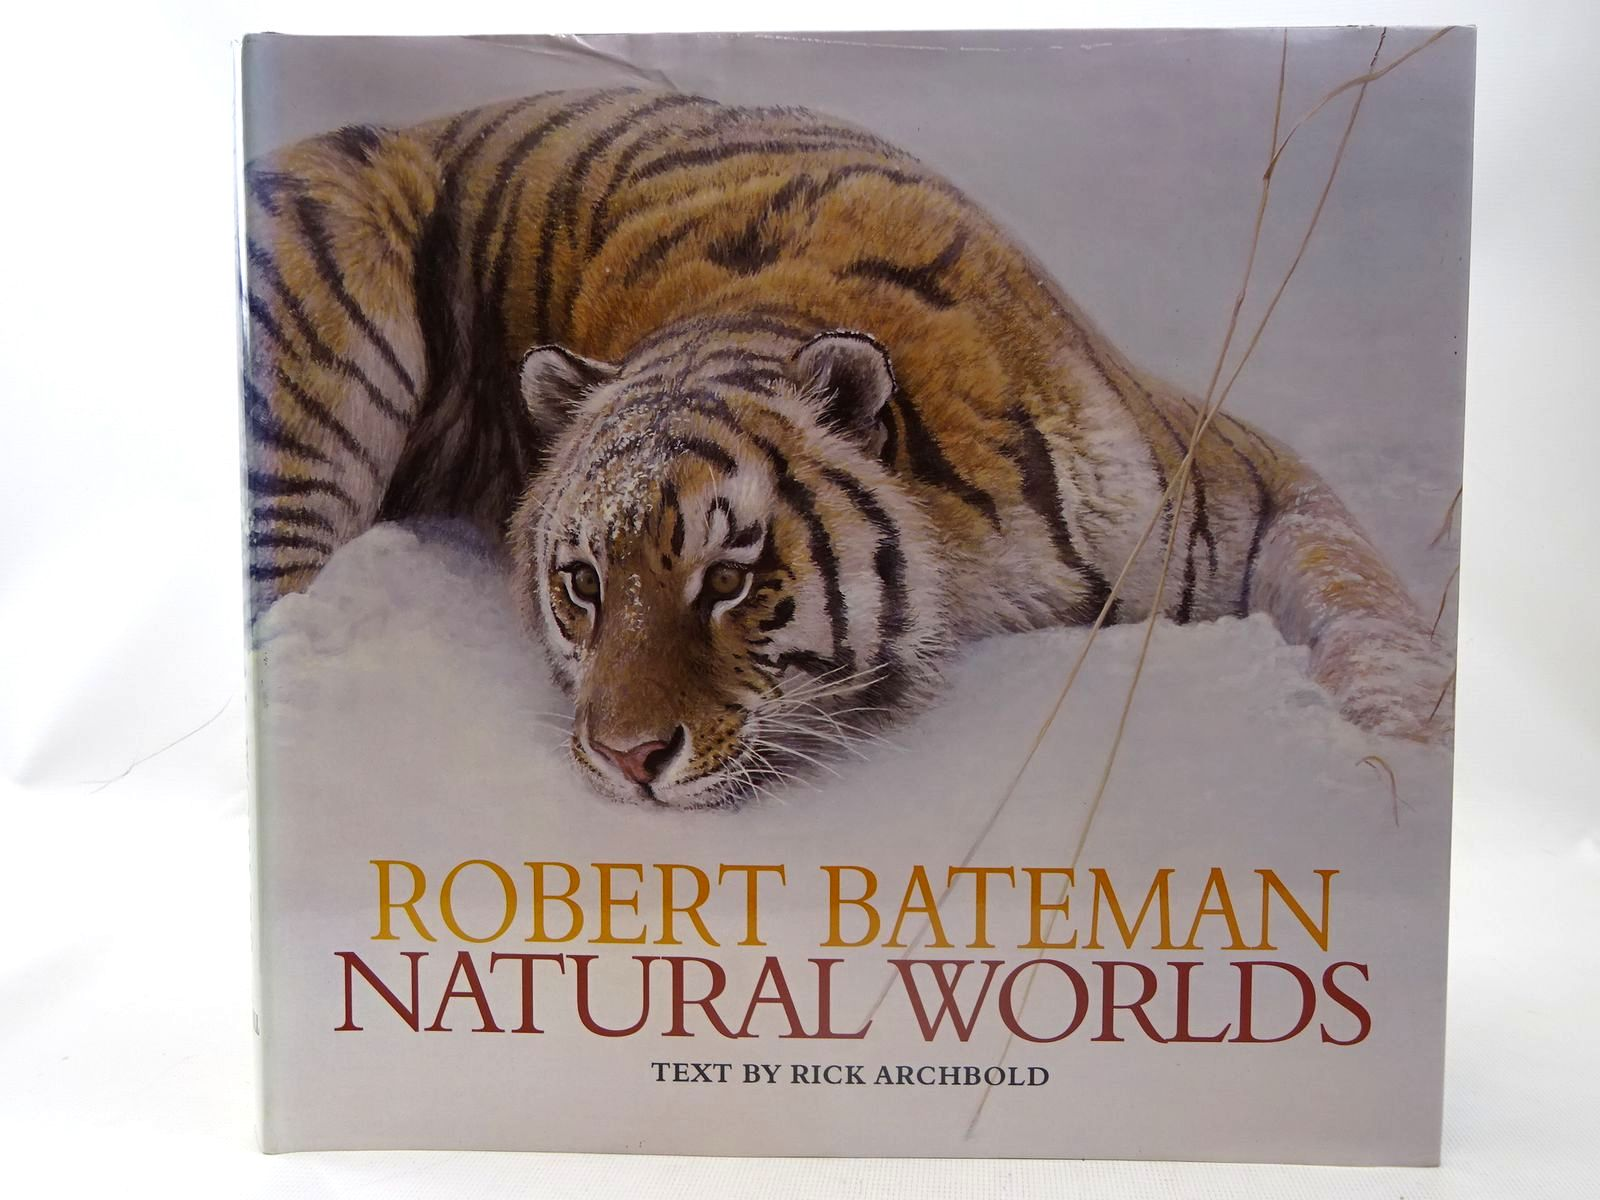 Photo of NATURAL WORLDS written by Archbold, Rick illustrated by Bateman, Robert published by Swan Hill Press (STOCK CODE: 2127948)  for sale by Stella & Rose's Books